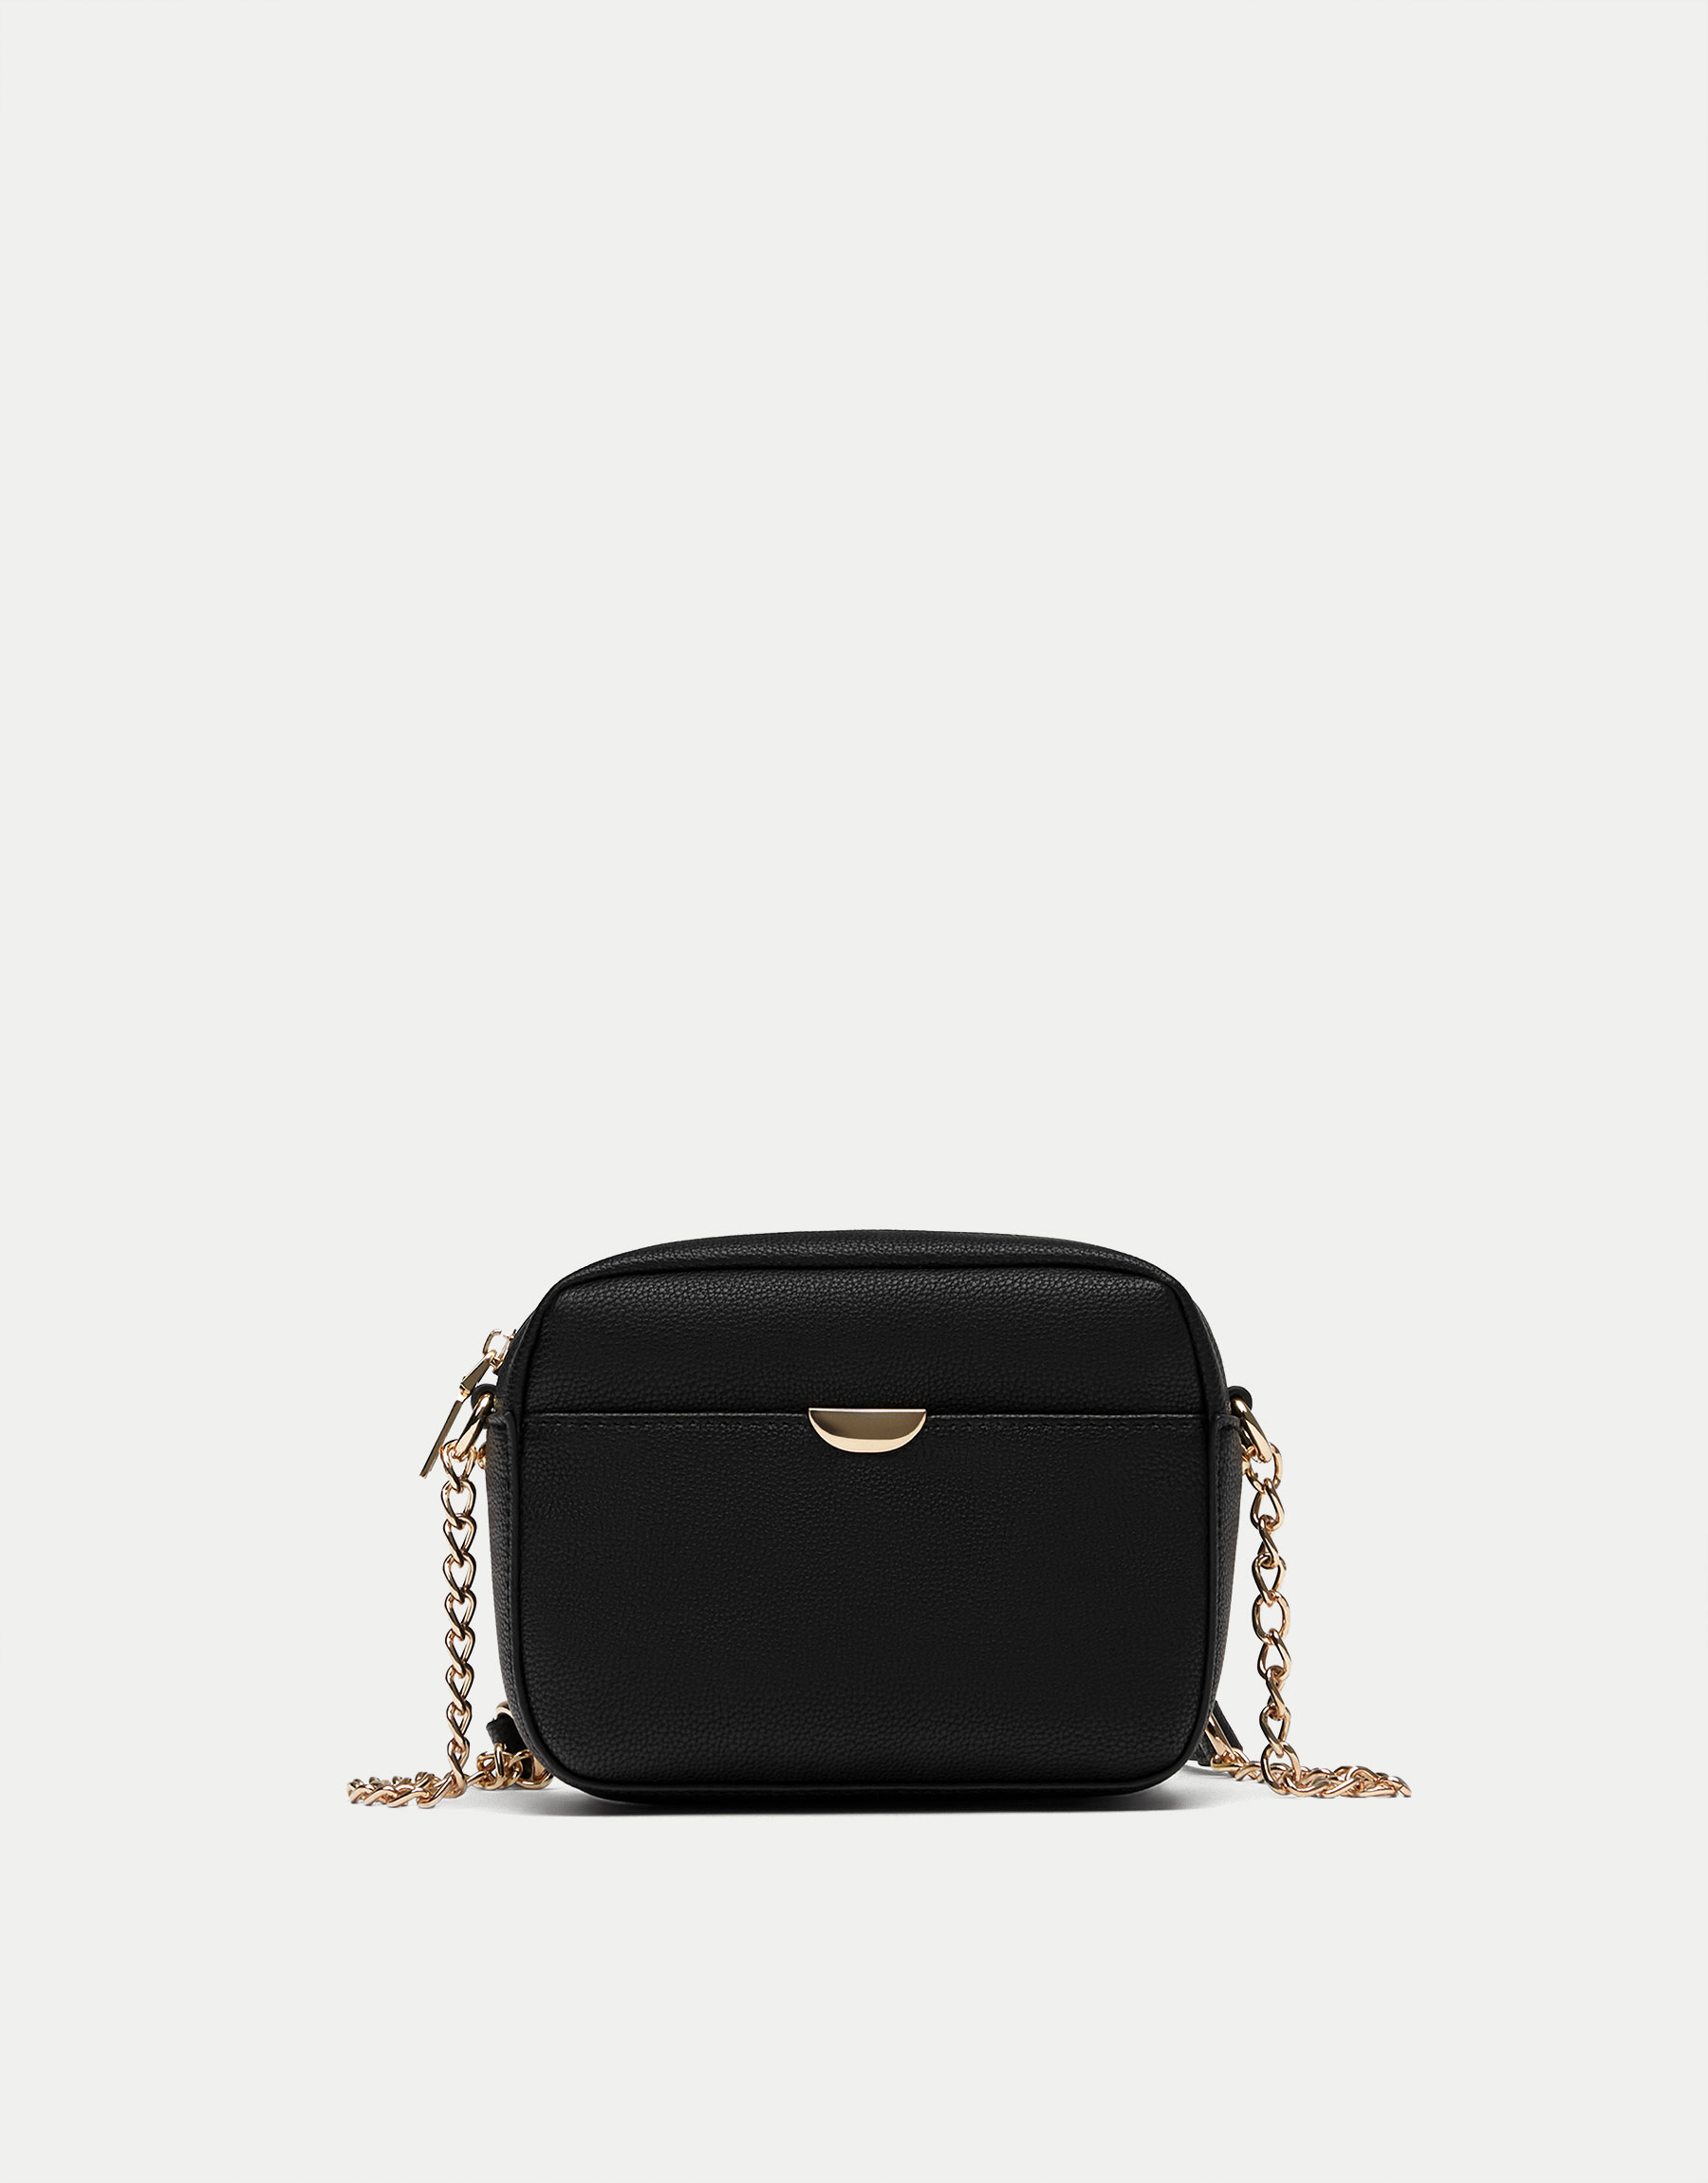 Crossbody bag with metallic detail